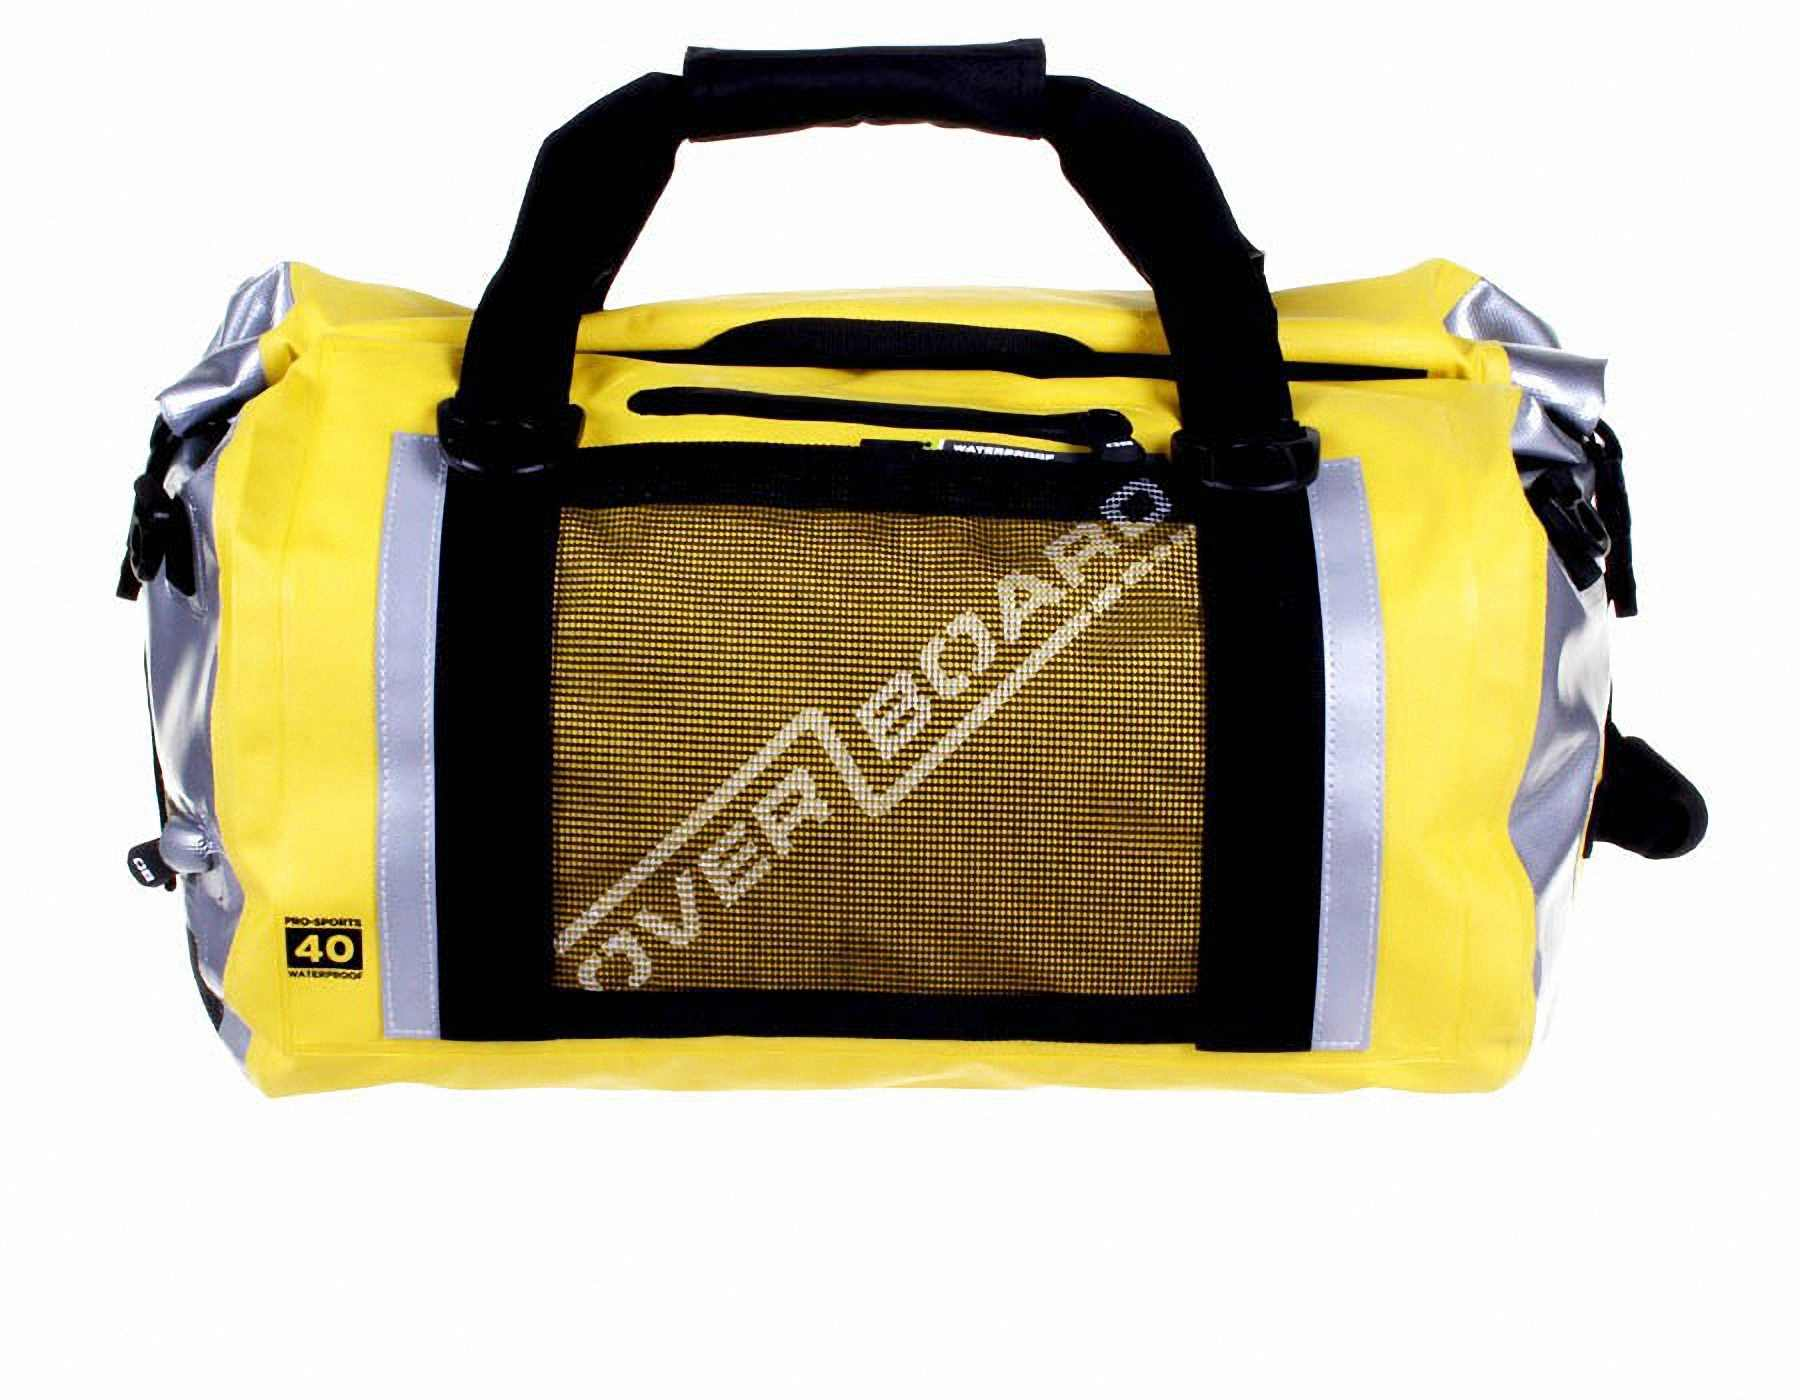 Водонепроницаемая сумка OverBoard OB1153Y - Pro-Sports Waterproof Duffel Bag - 40 литров.  Фото 1